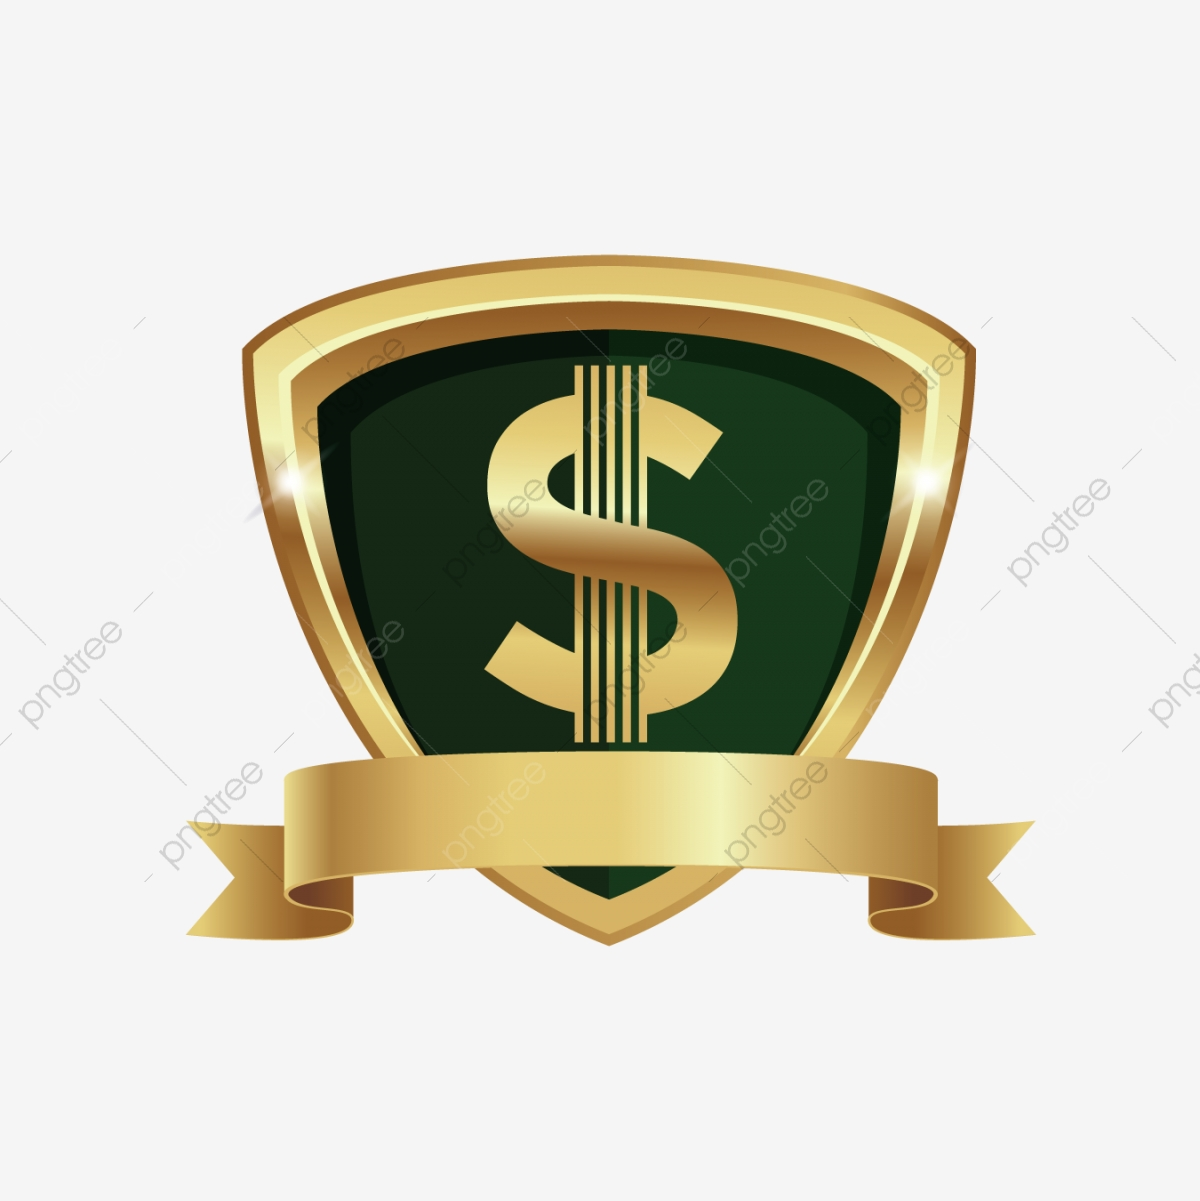 Gold Dollar Sign, Dollar, Green, Money PNG and Vector with